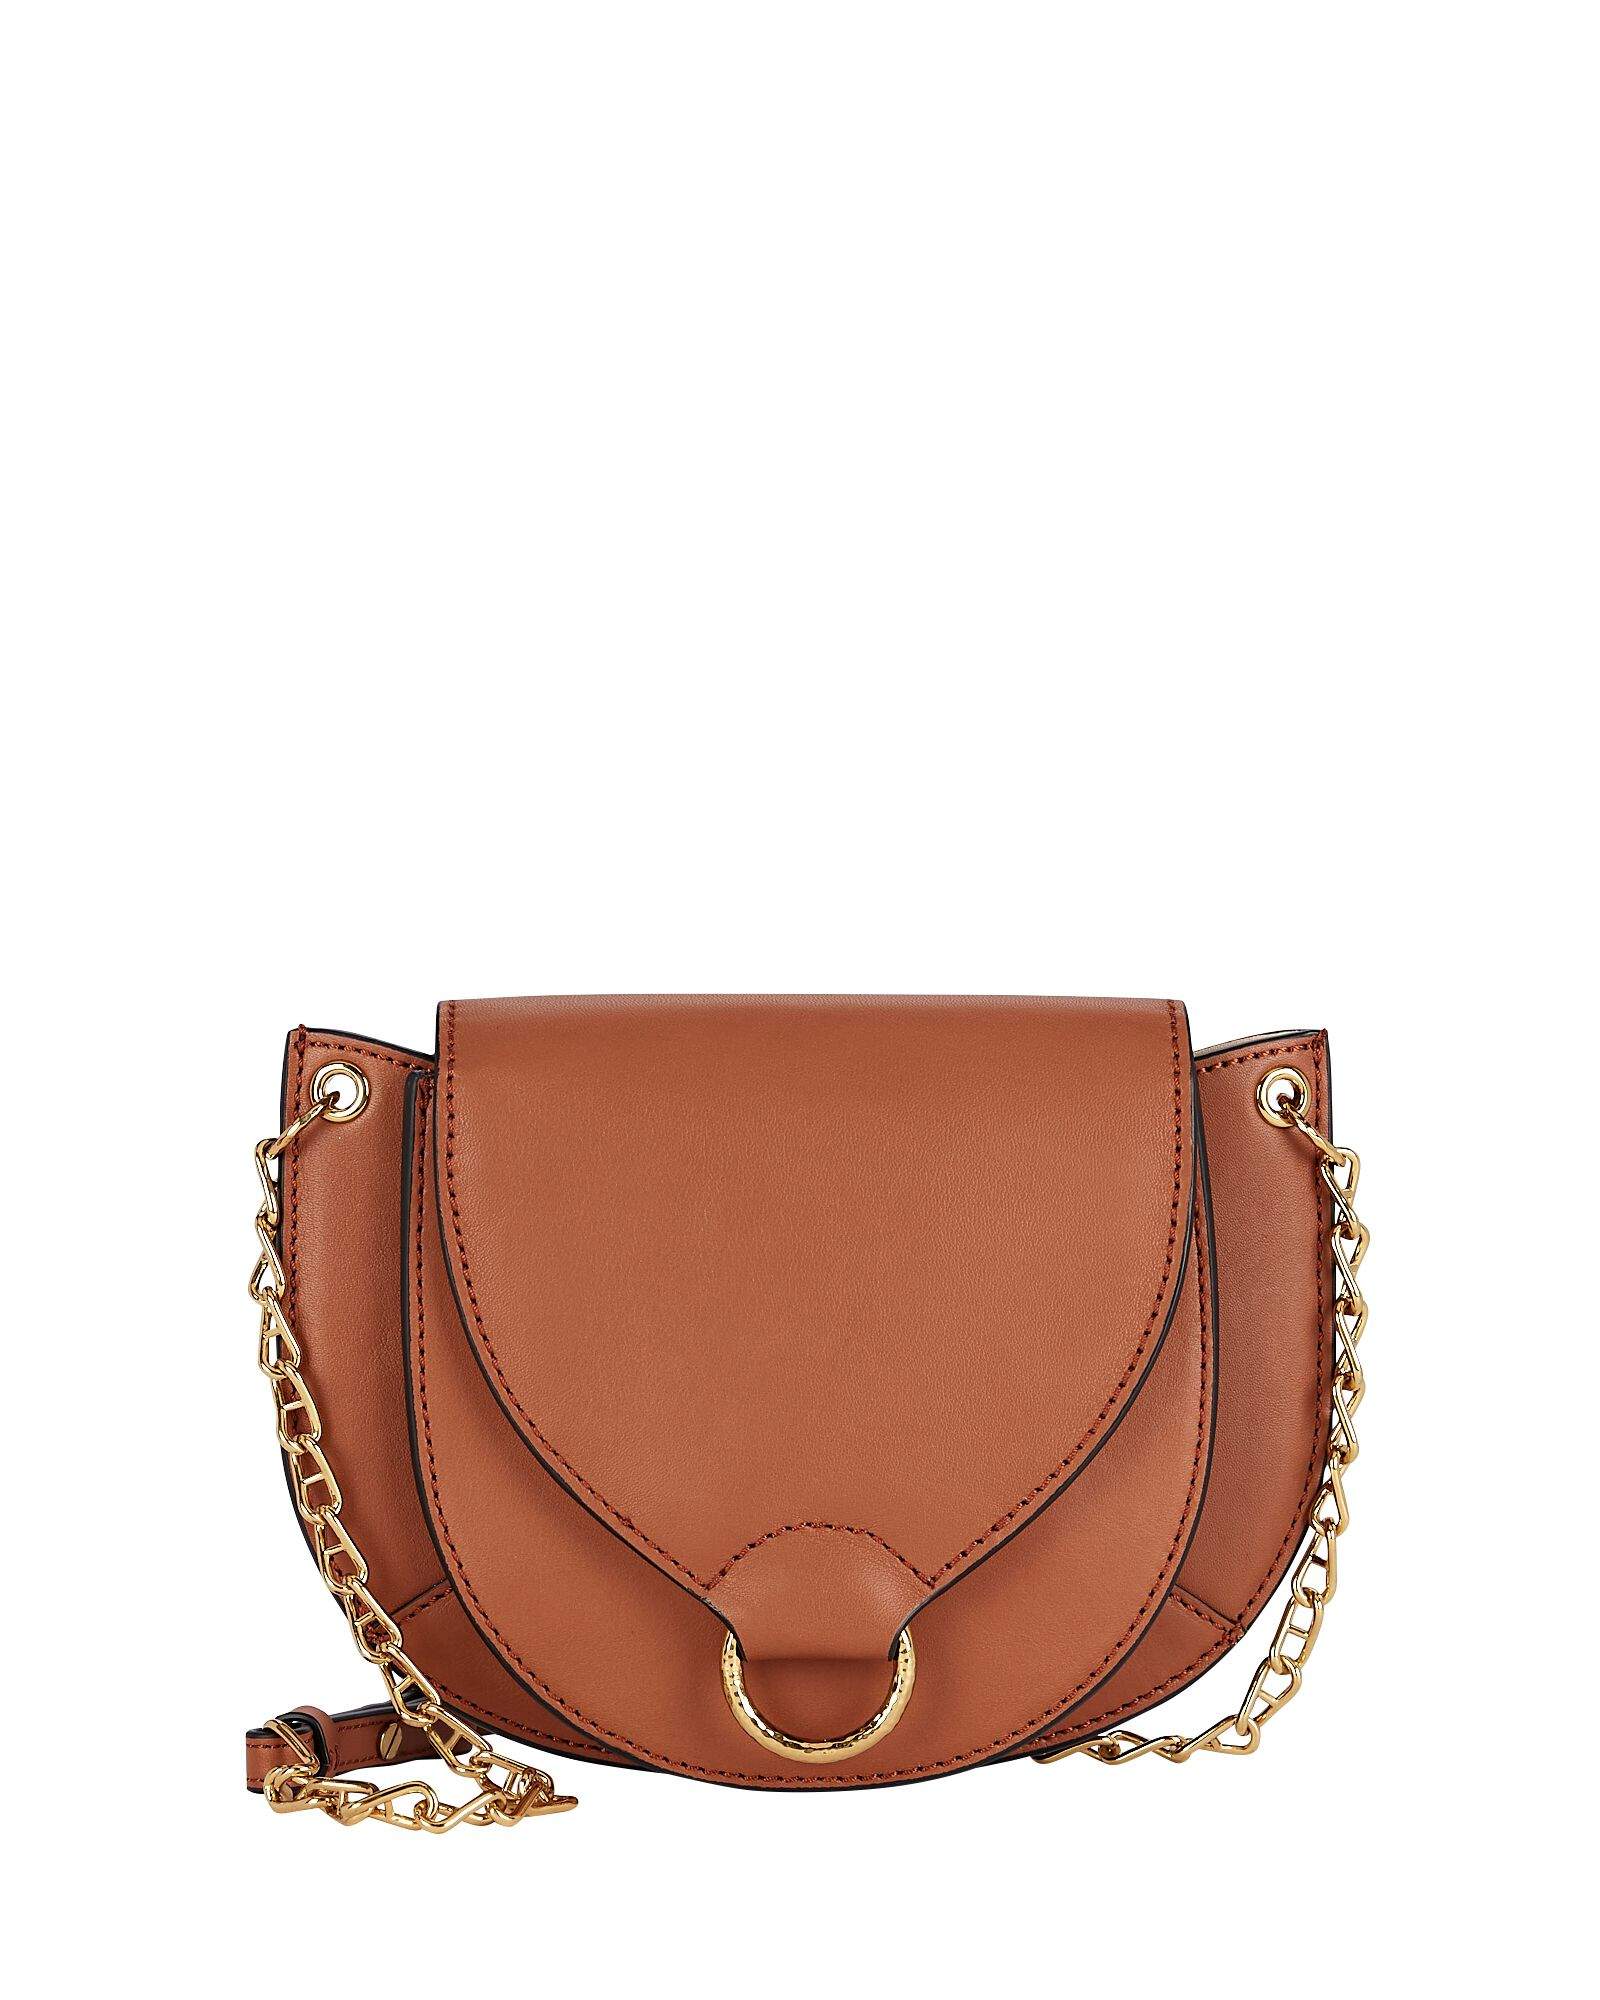 Esme Leather Crossbody Bag, BROWN, hi-res